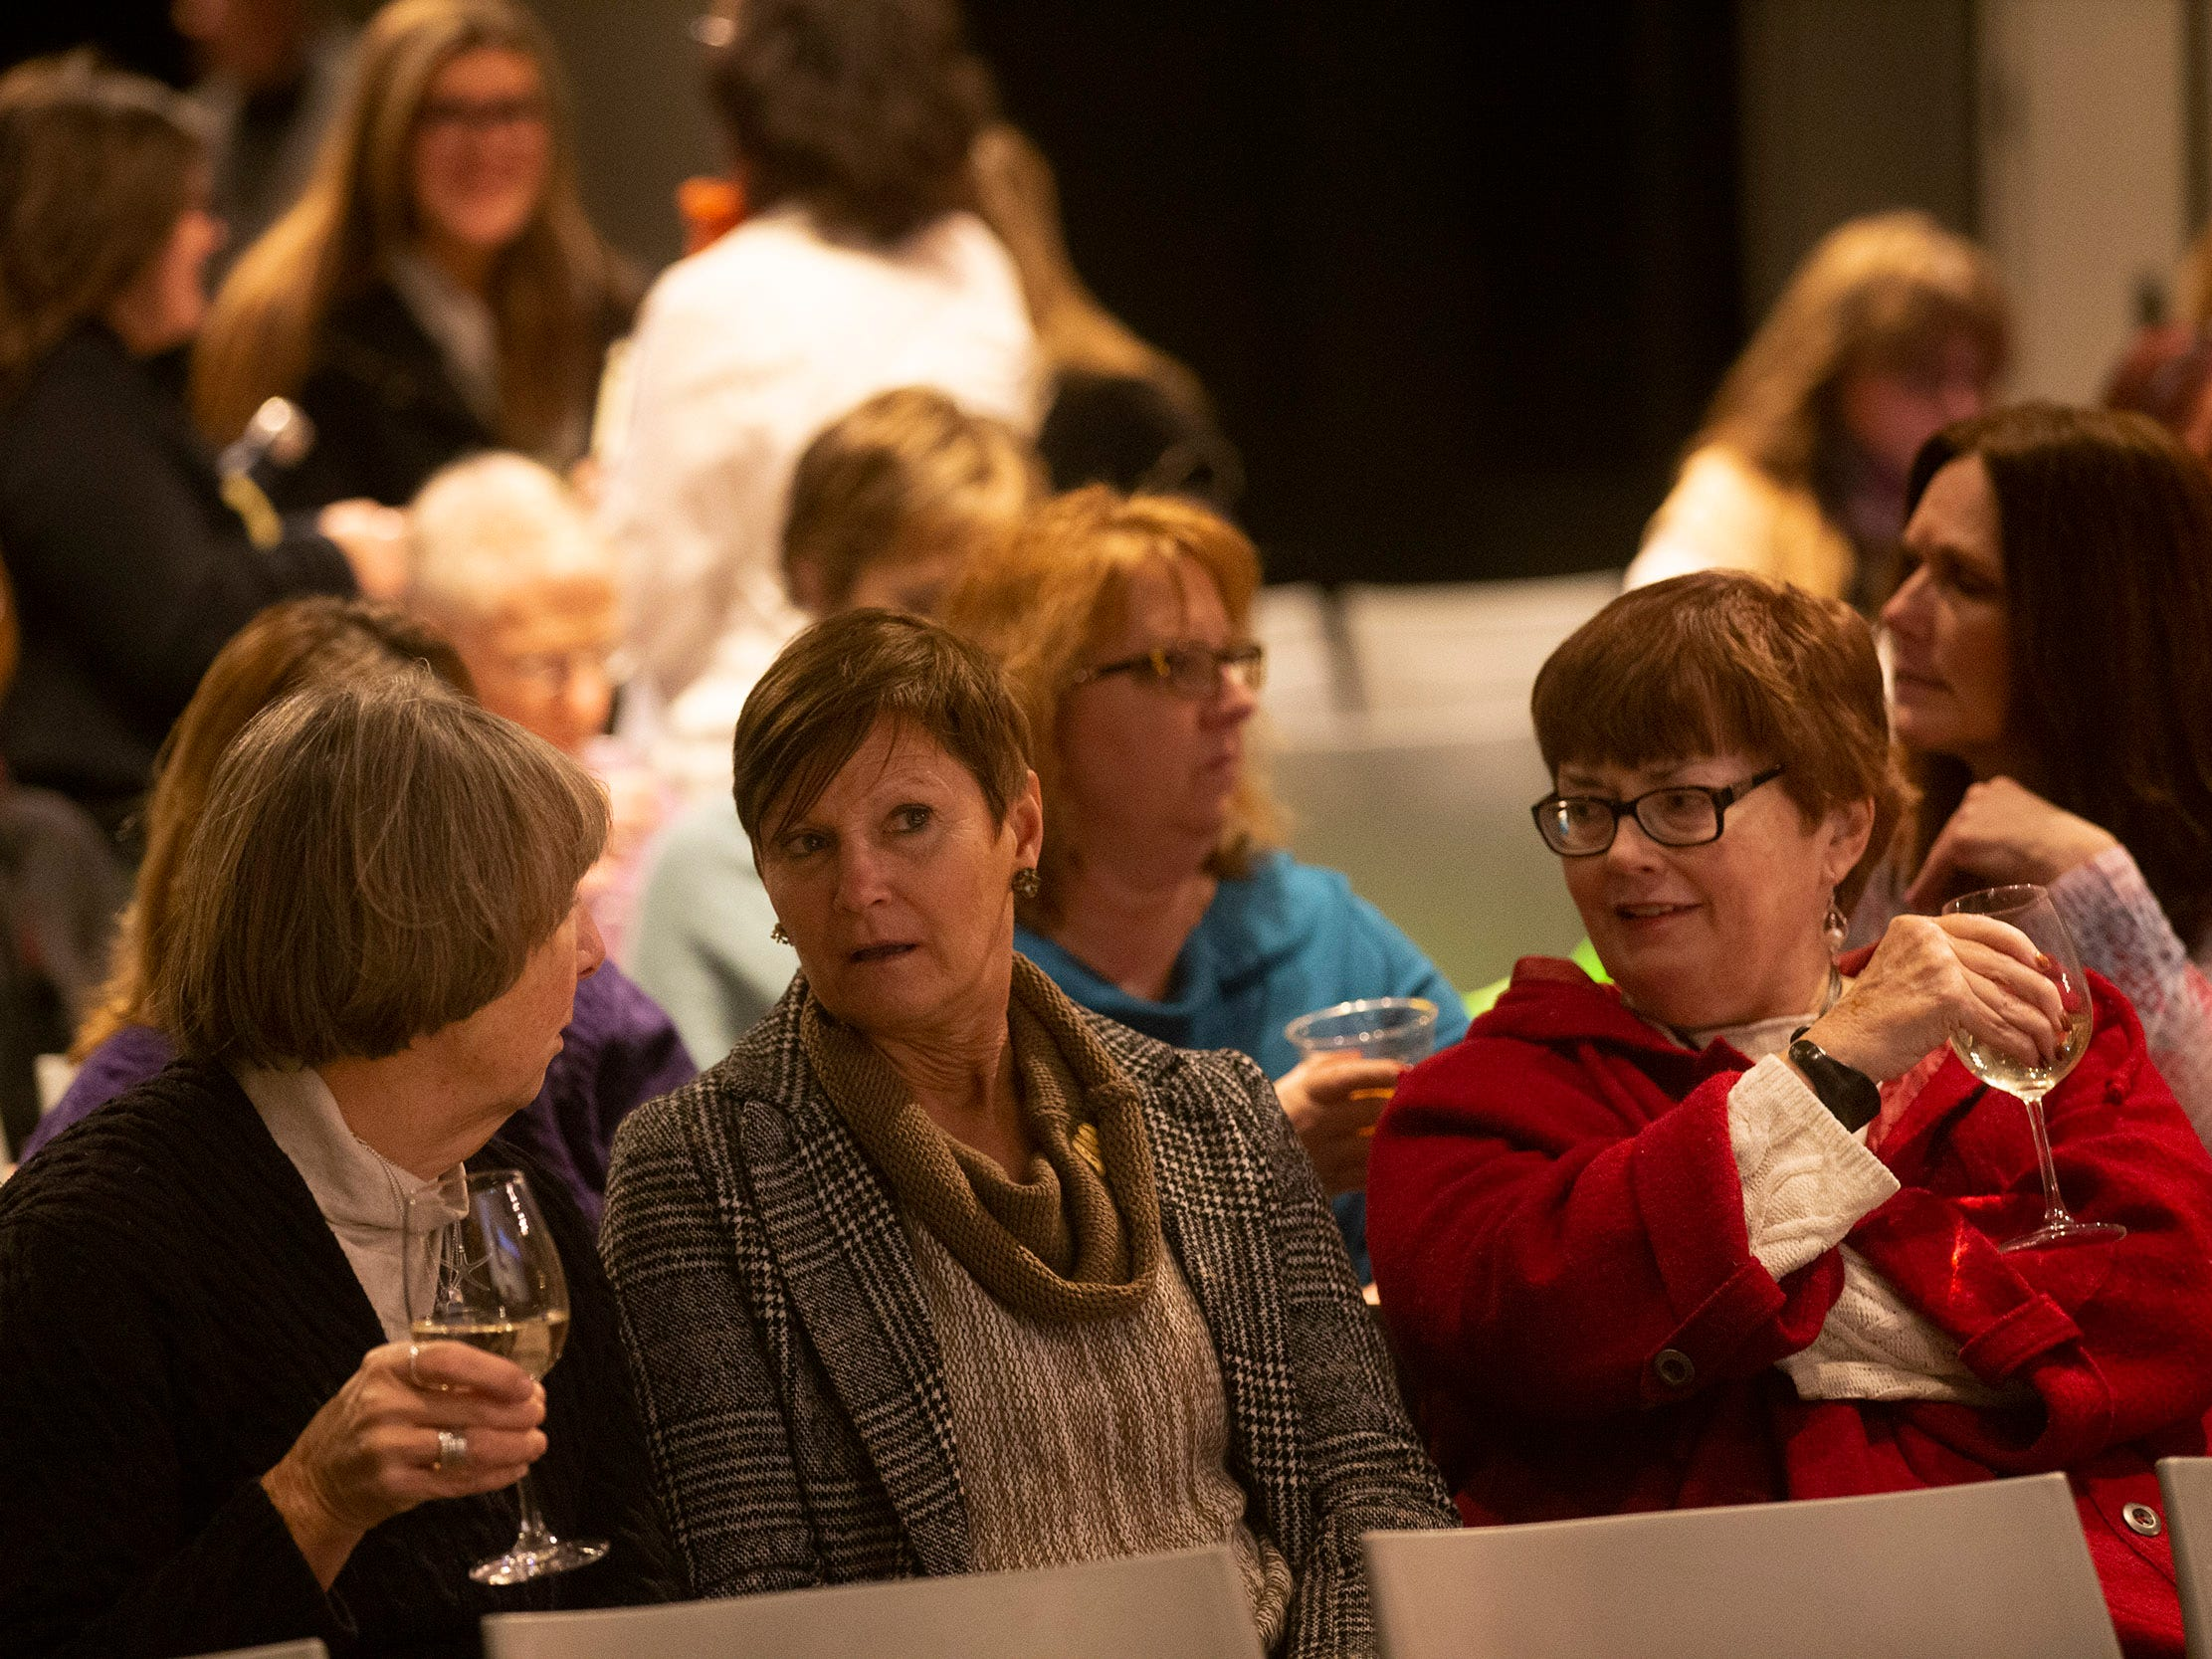 Attendees enjoy drinks and conversation before the program begins. Speakers and crowds alike enjoy the latest version of Storytellers in Asbury Park on February 27, 2019, this night's subject was starting over. Atten